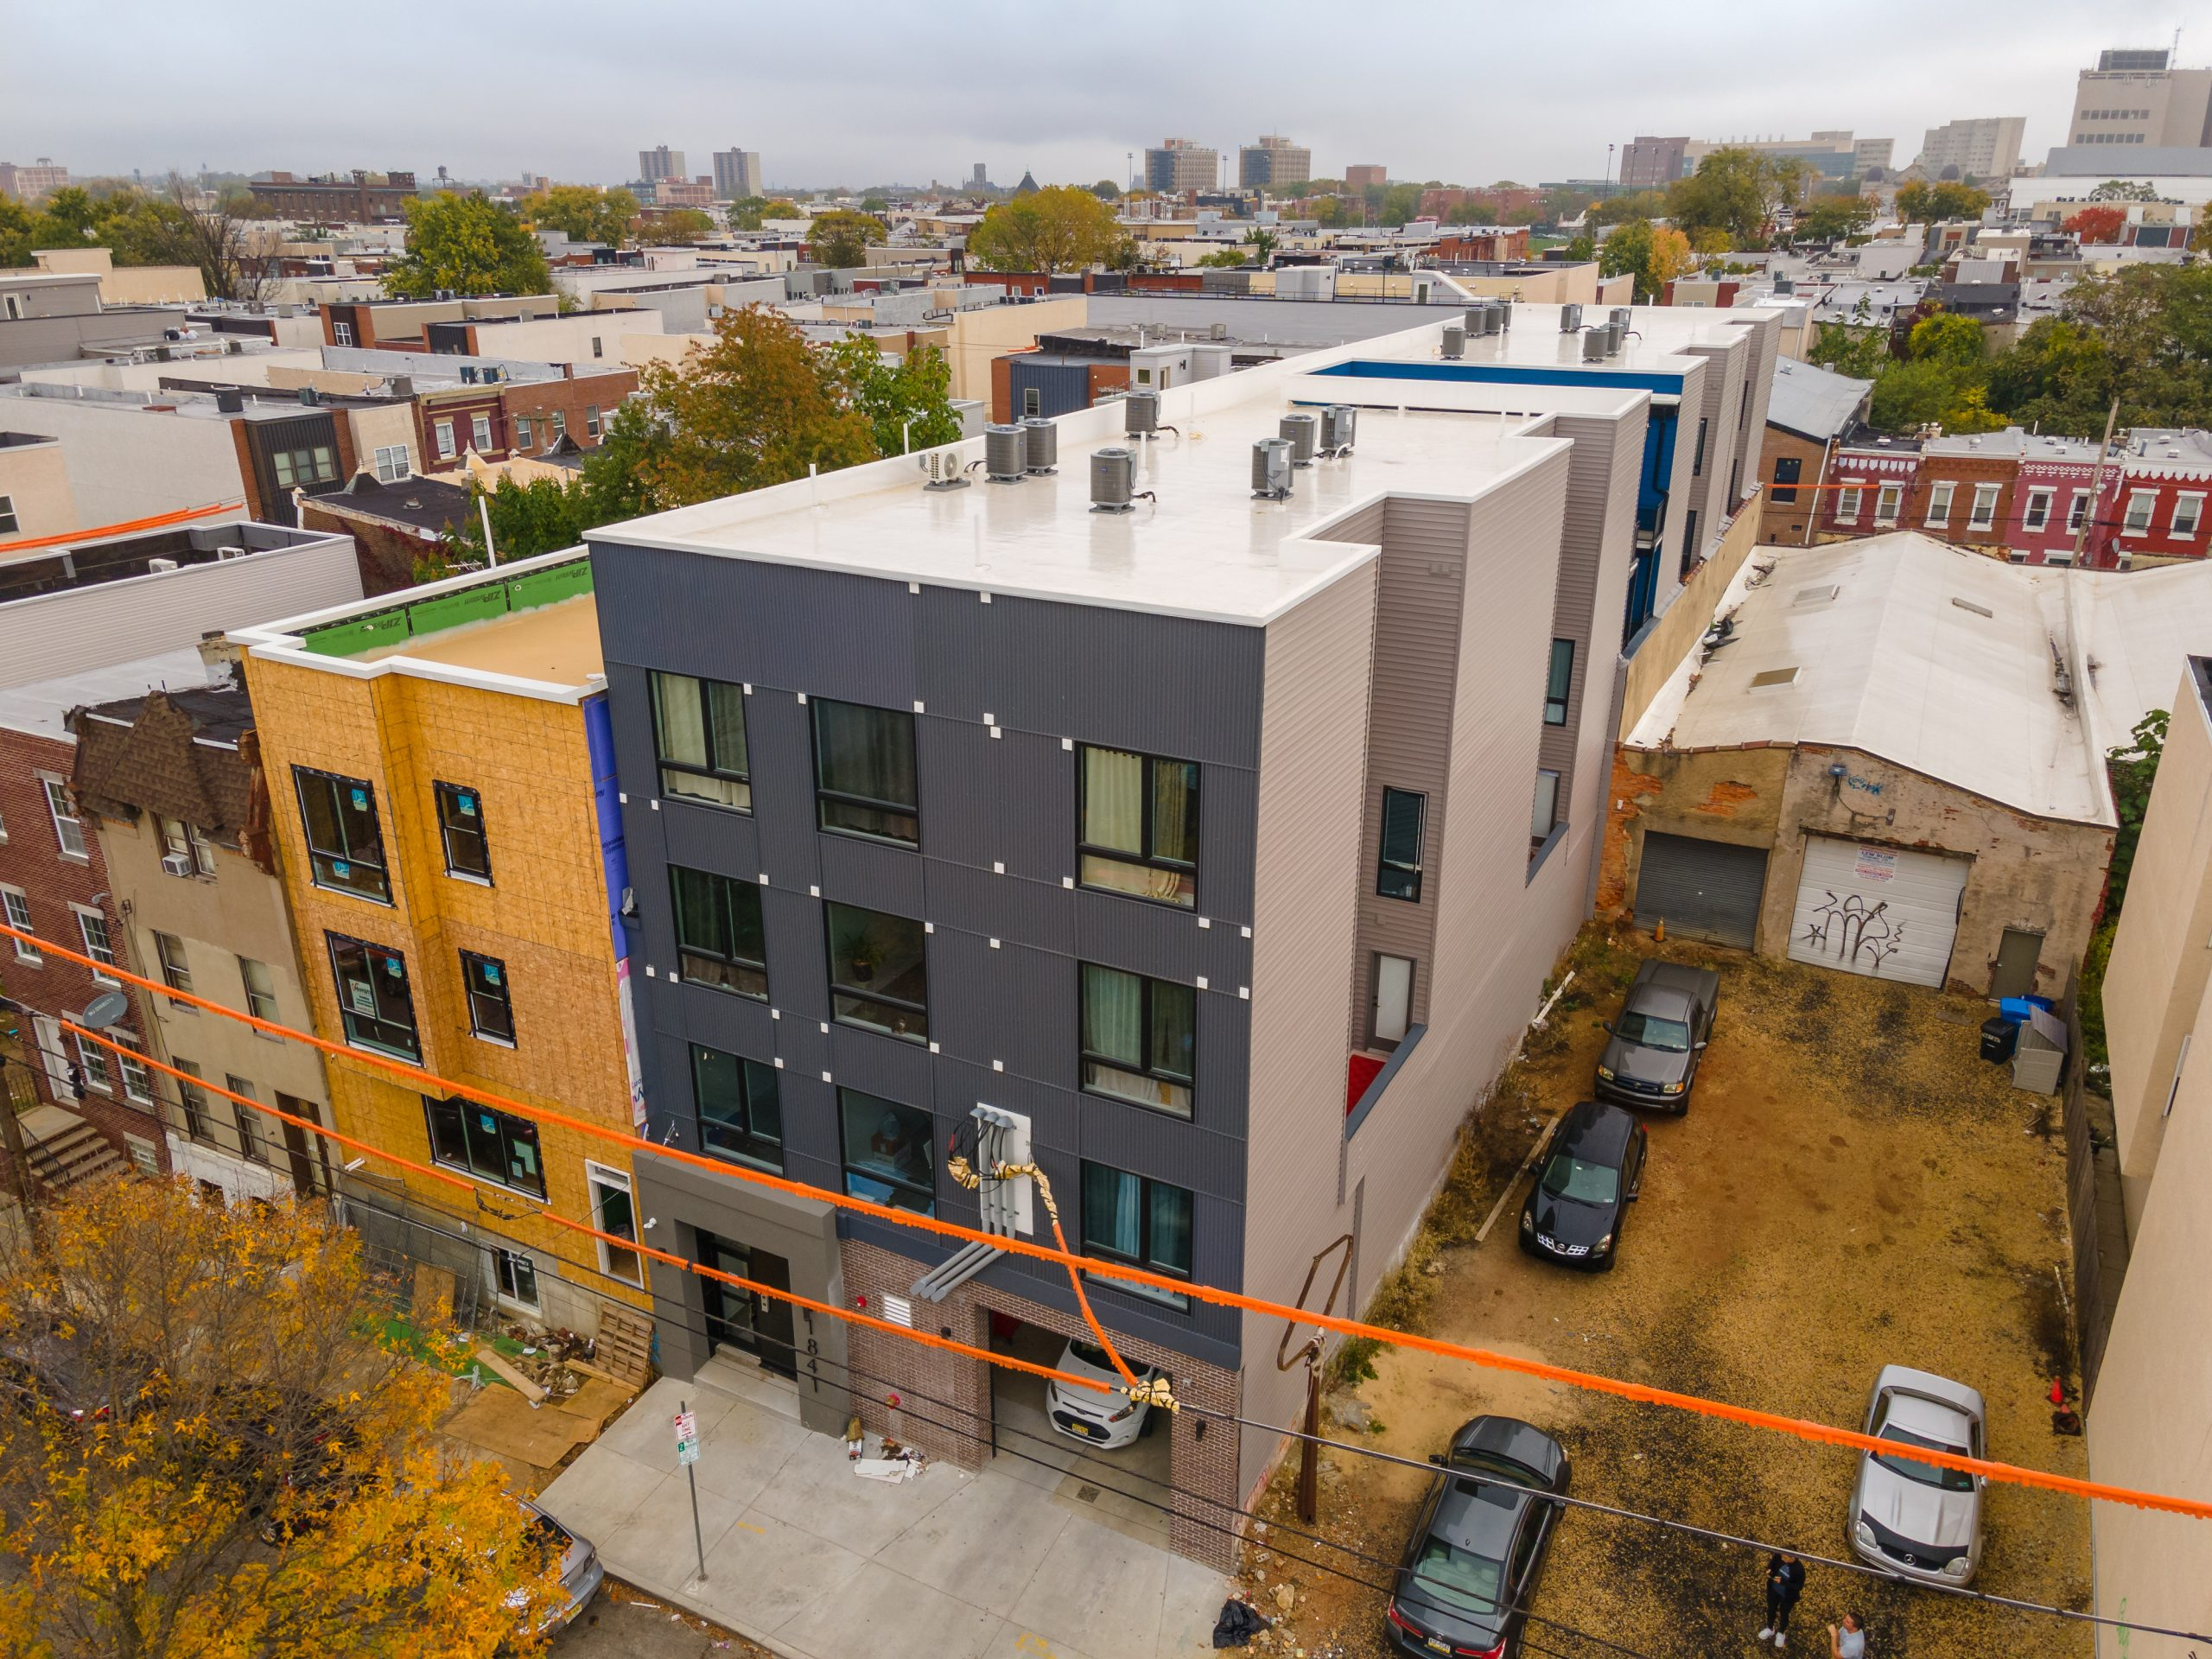 THE PICKLE FACTORY AERIAL PHOTOS 2020-10-23 WEFILMPHILLY-6